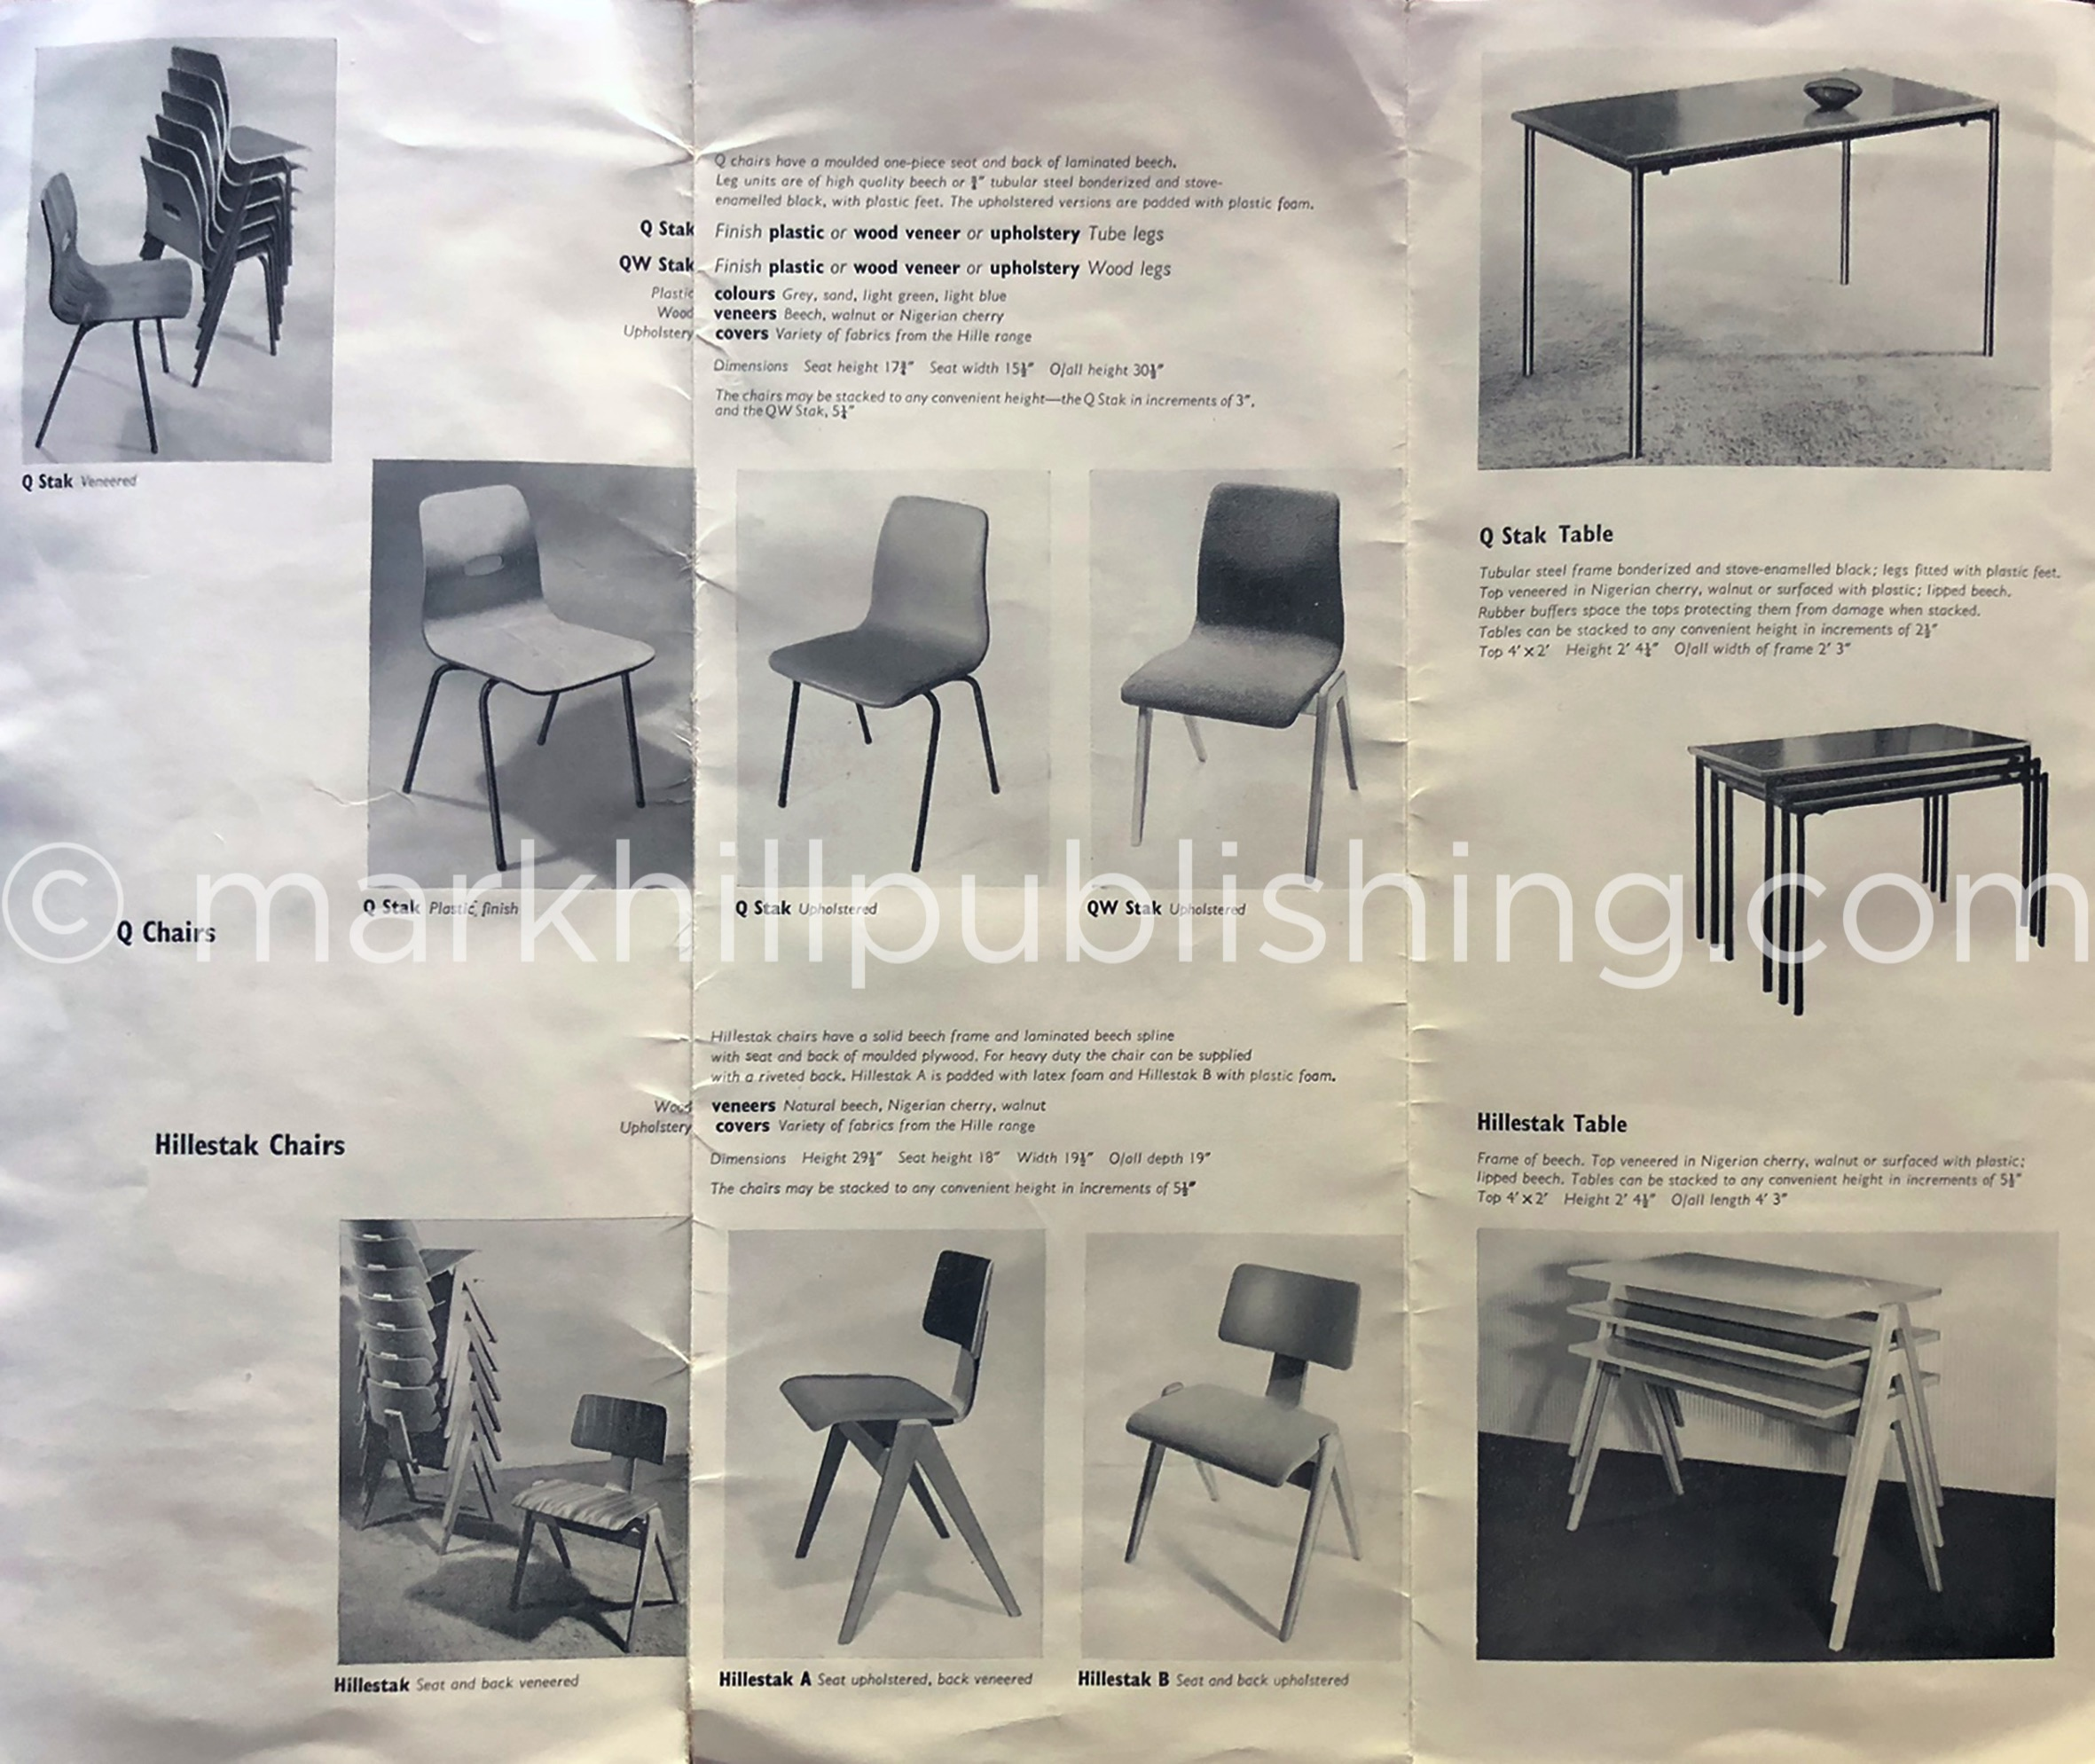 1960s original Hille furniture catalogue Robin Day Hillestak